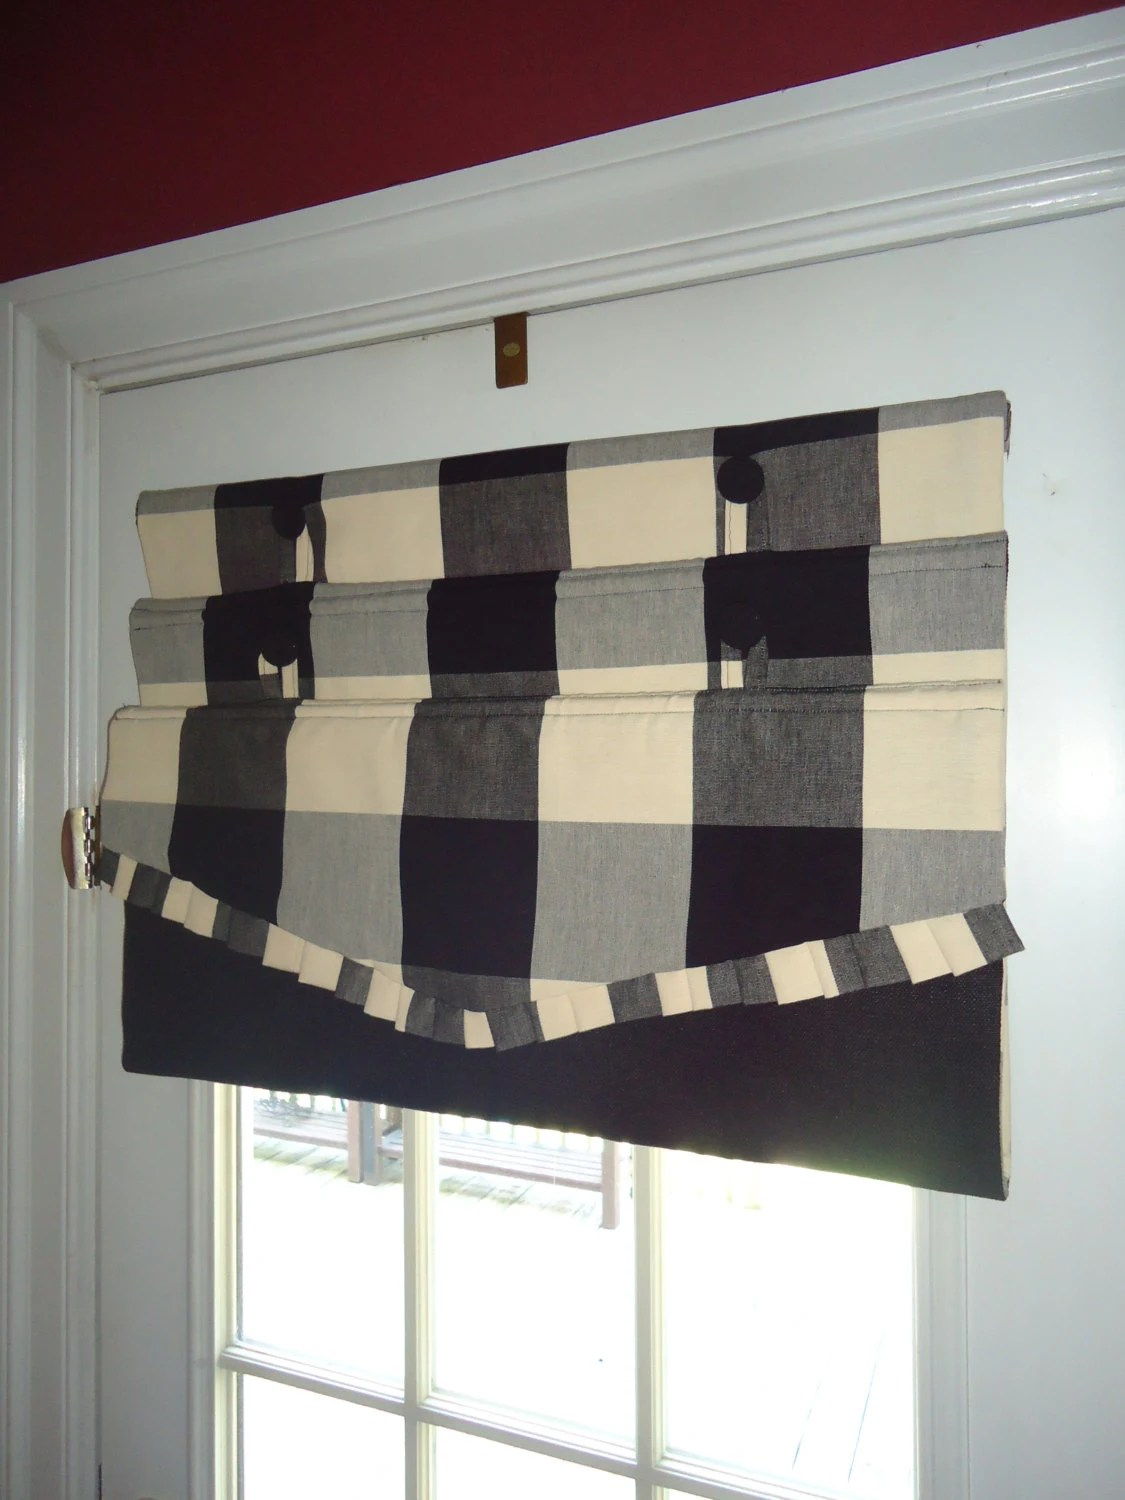 Diy Roman Shades For French Doors French Door Cordless Roman Shades Diy Downloadable